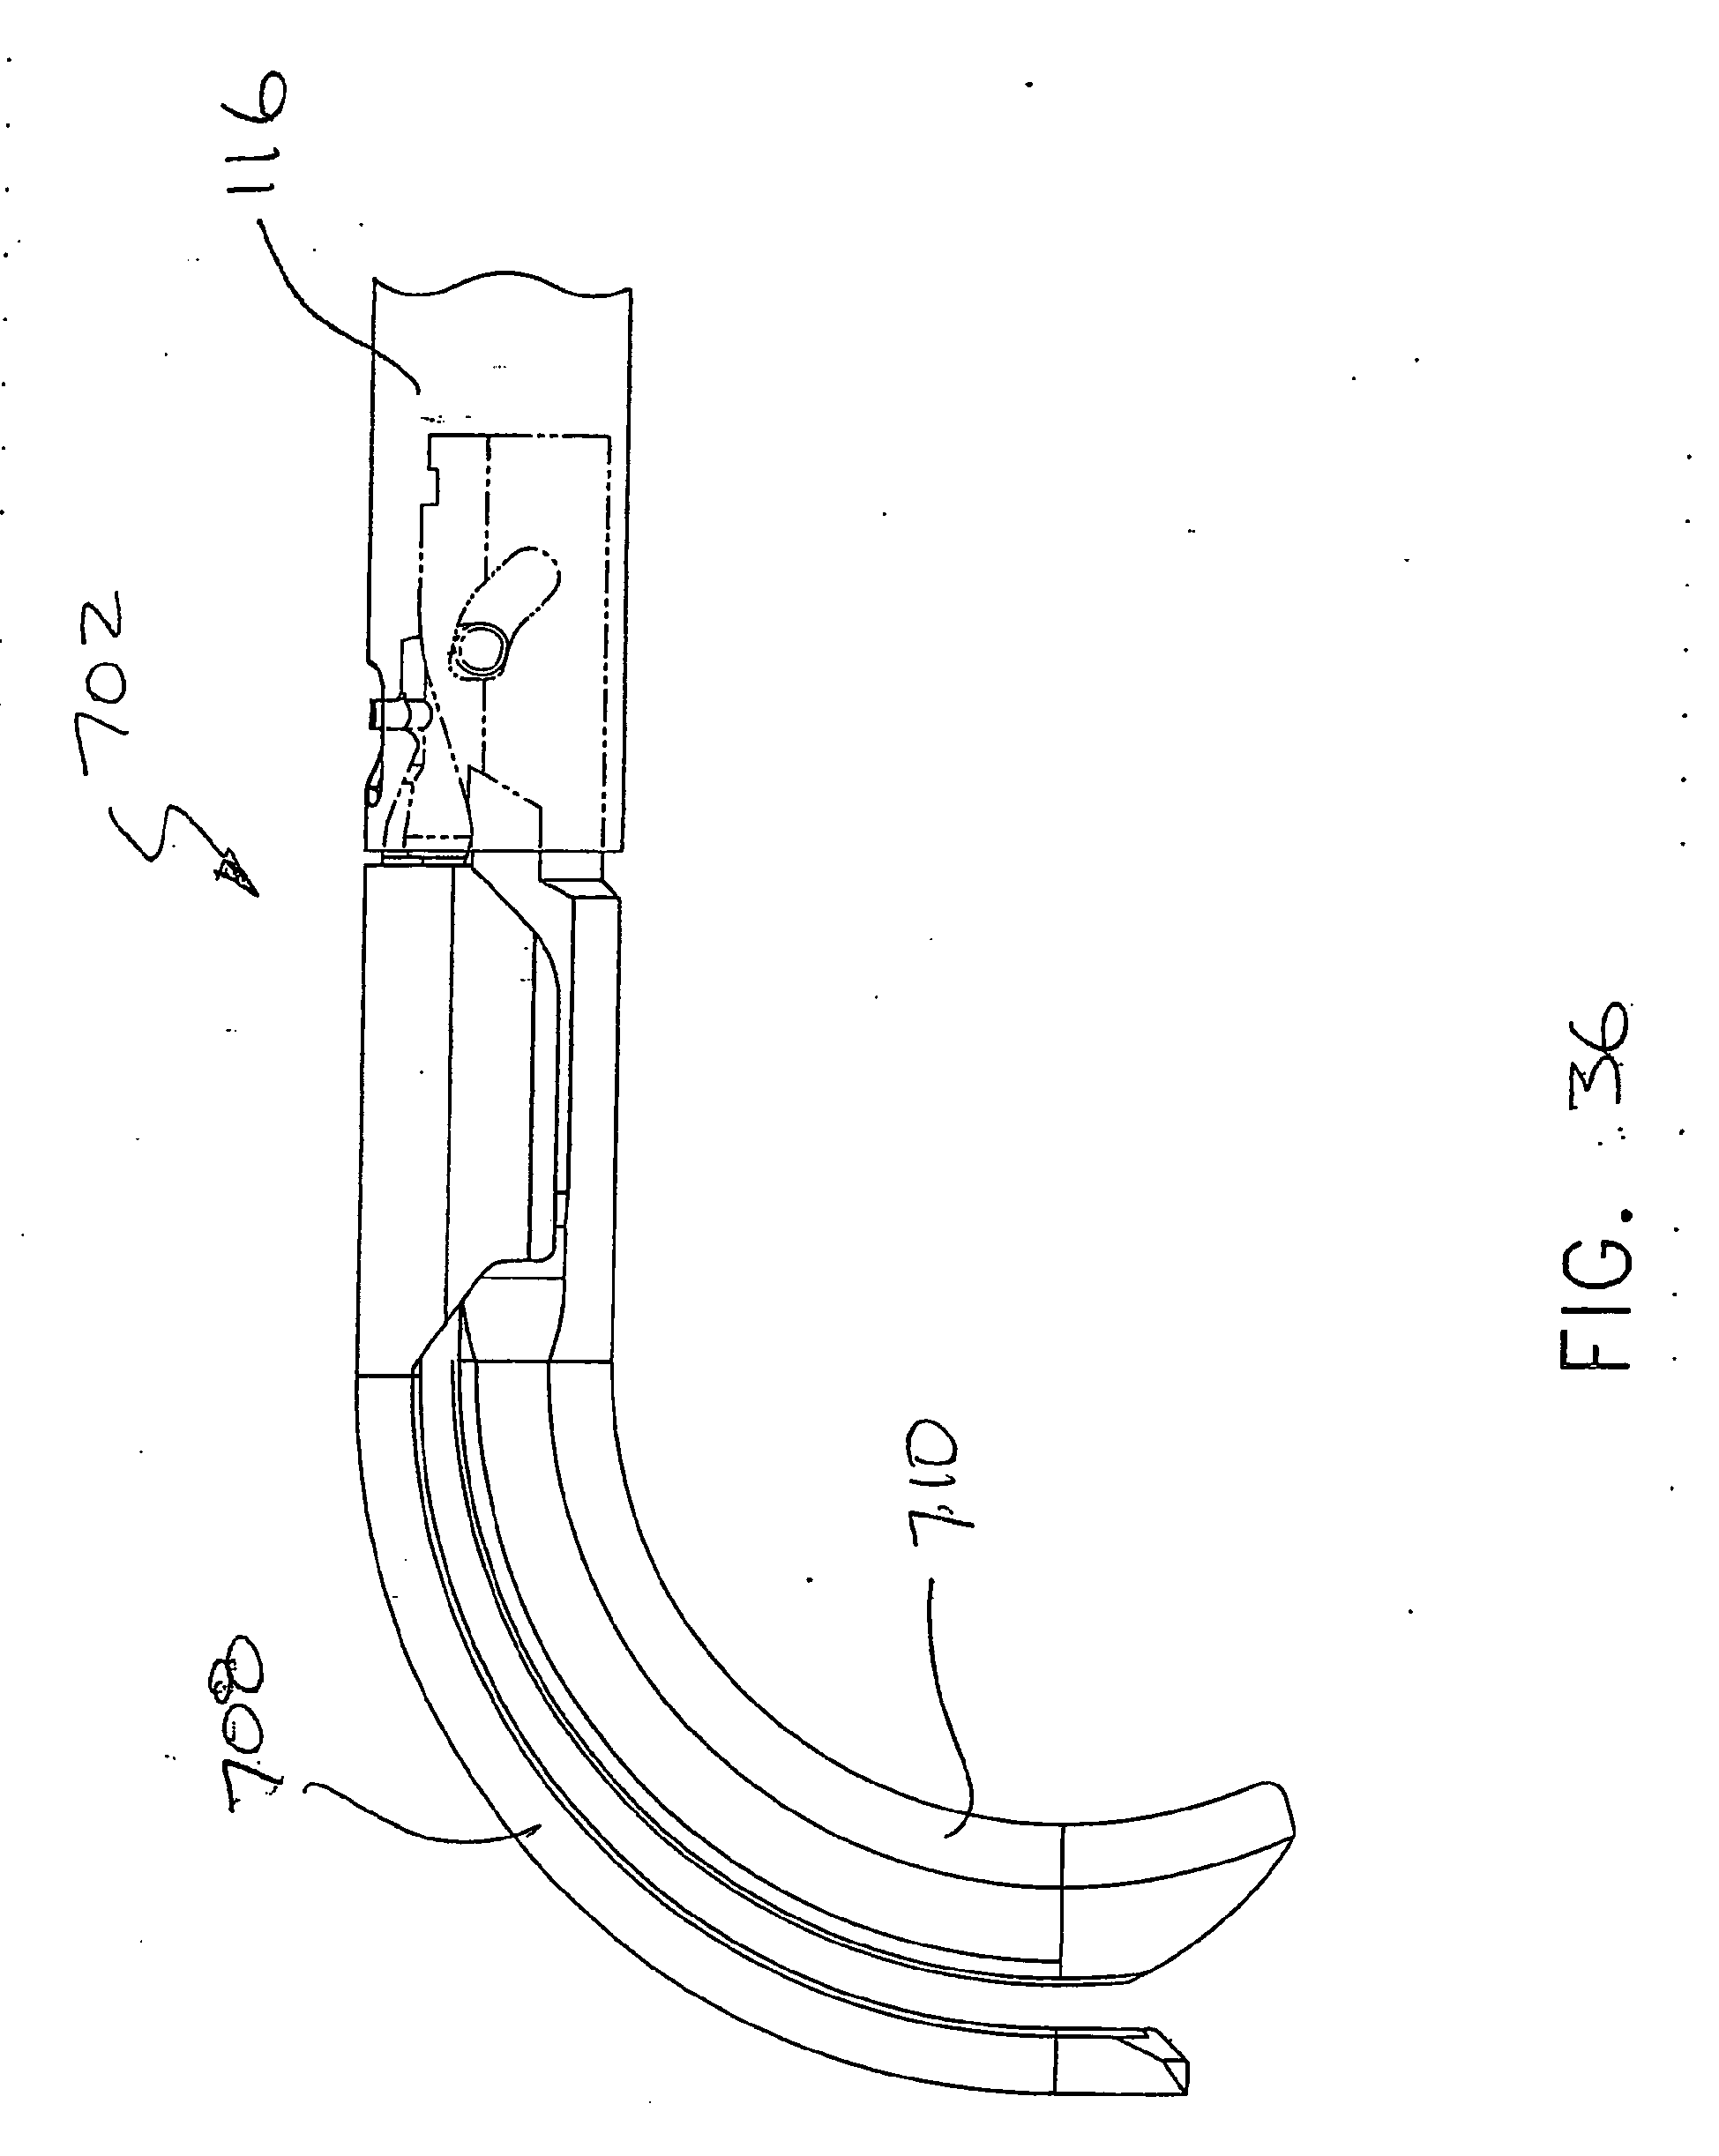 Ep1943962b1 improved curved end effector for a surgical stapling device patents